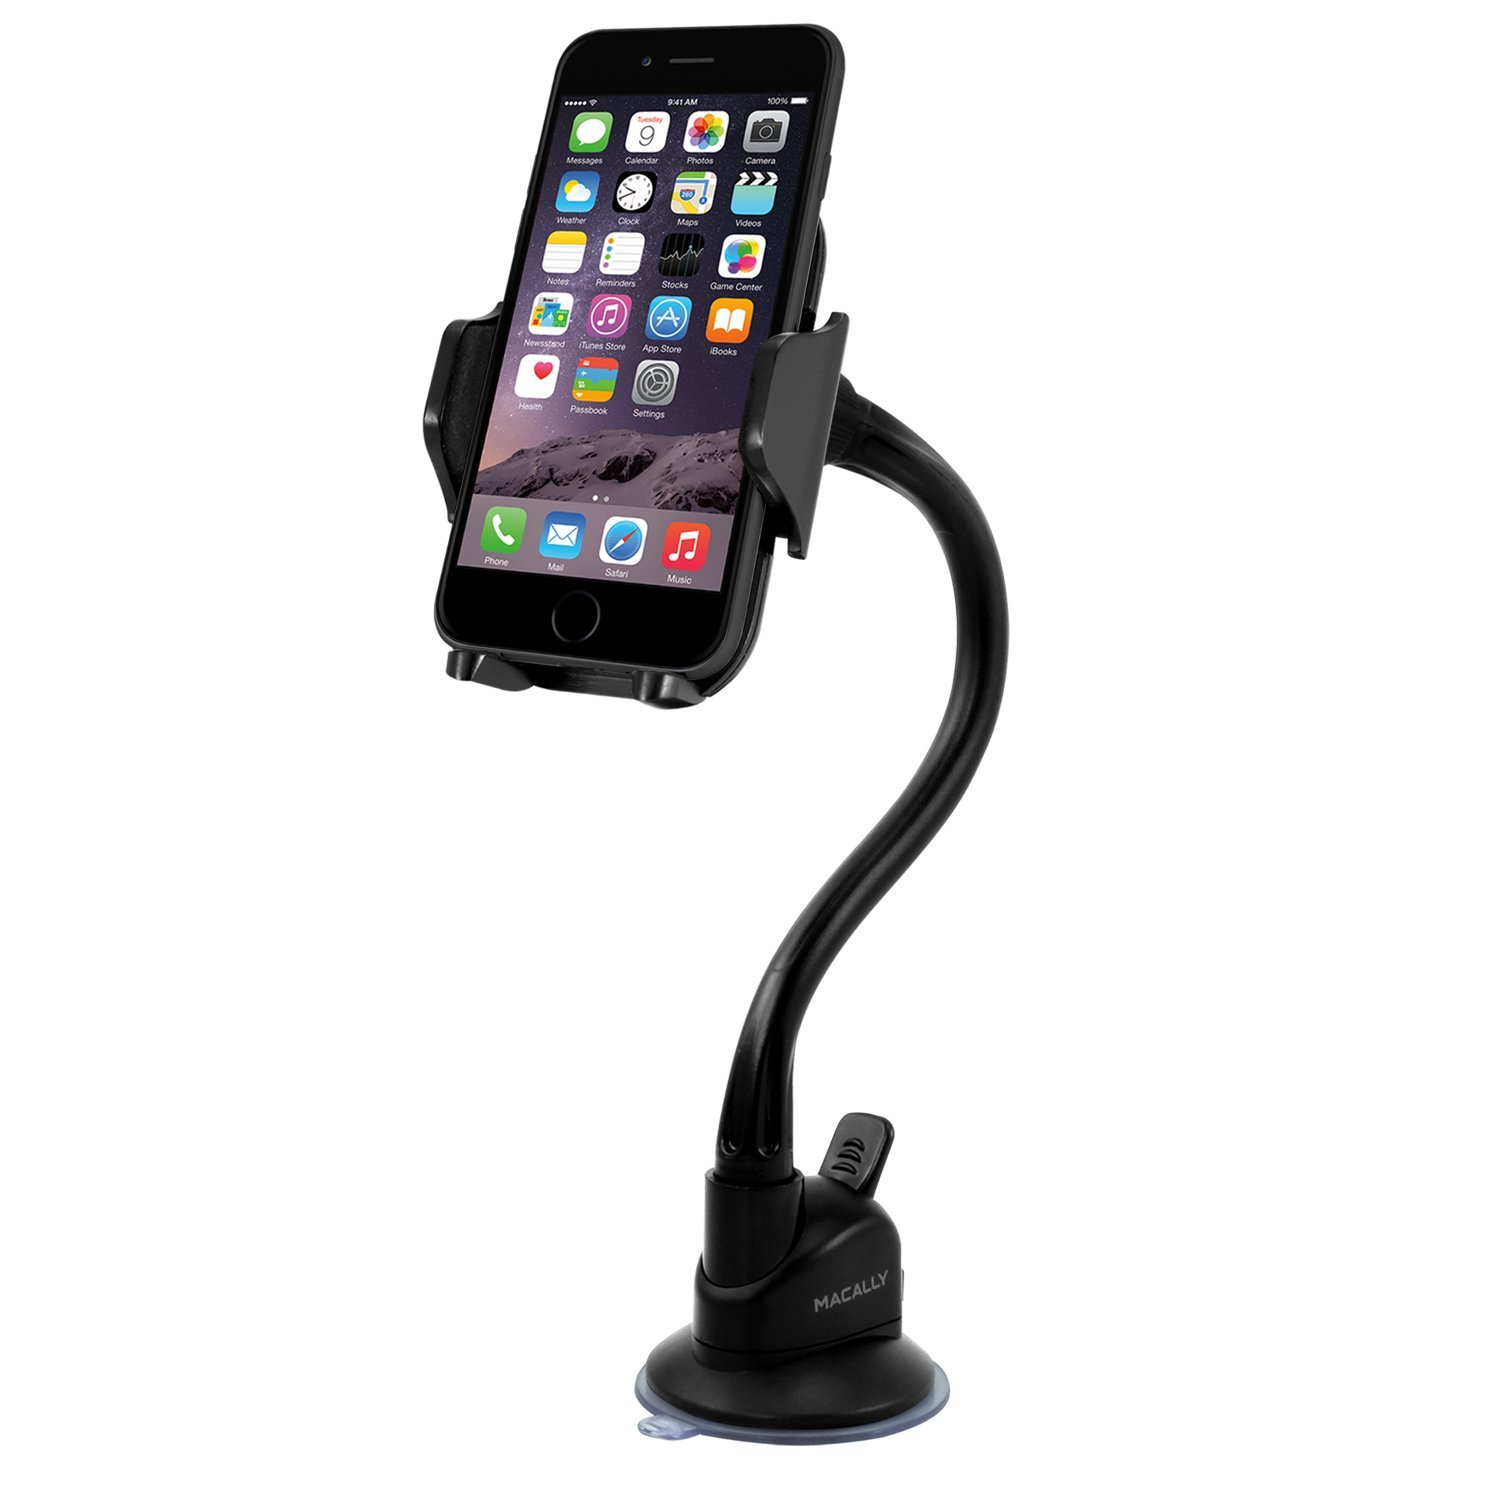 Macally Windshield Phone Mount, Adjustable Suction Cup Window Phone Mount Holder for iPhone XS XS Max XR X 8 8 Plus 7 7+ 6s 6 SE Samsung Galaxy S9 S9+ S8 S8+ S7 Edge Note 5 Nexus 6 Pixel LG (MGRIP)